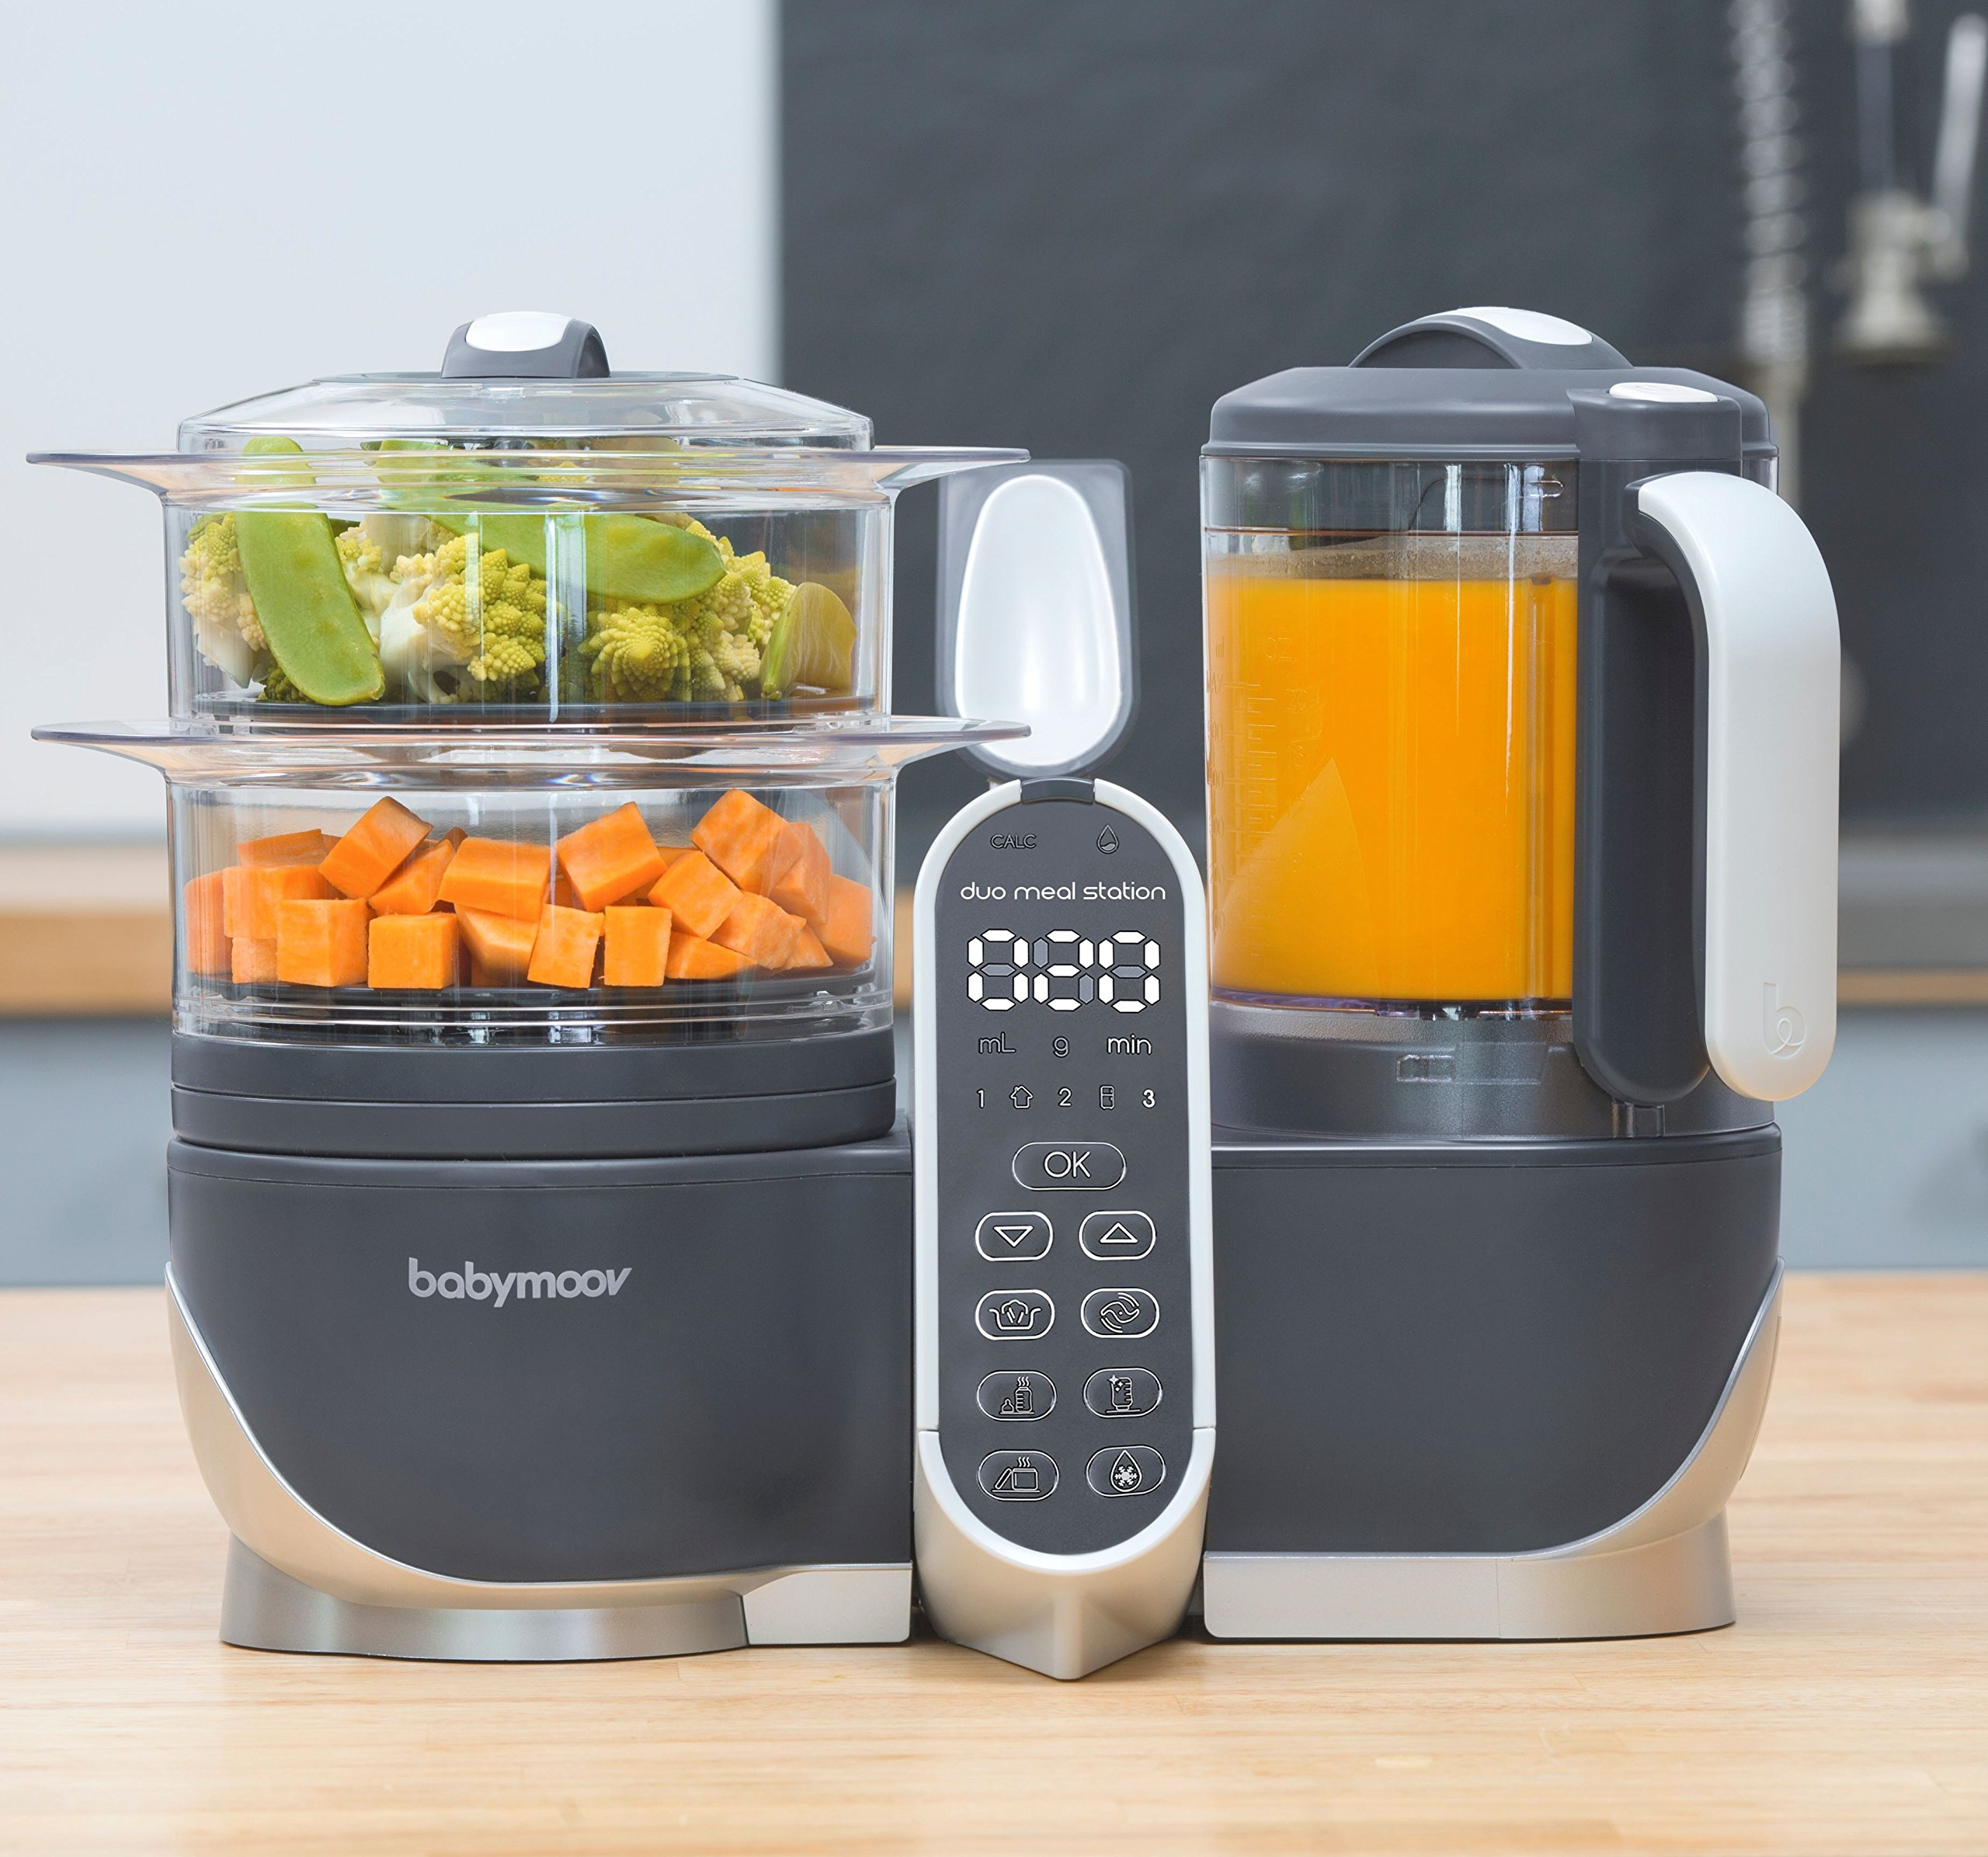 Duo Meal Station Food Maker | 6 in 1 Food Processor with Steam Cooker, Multi-Speed Blender, Baby Purees, Warmer, Defroster, Sterilizer (2019 NEW VERSION) by Babymoov (Image #2)